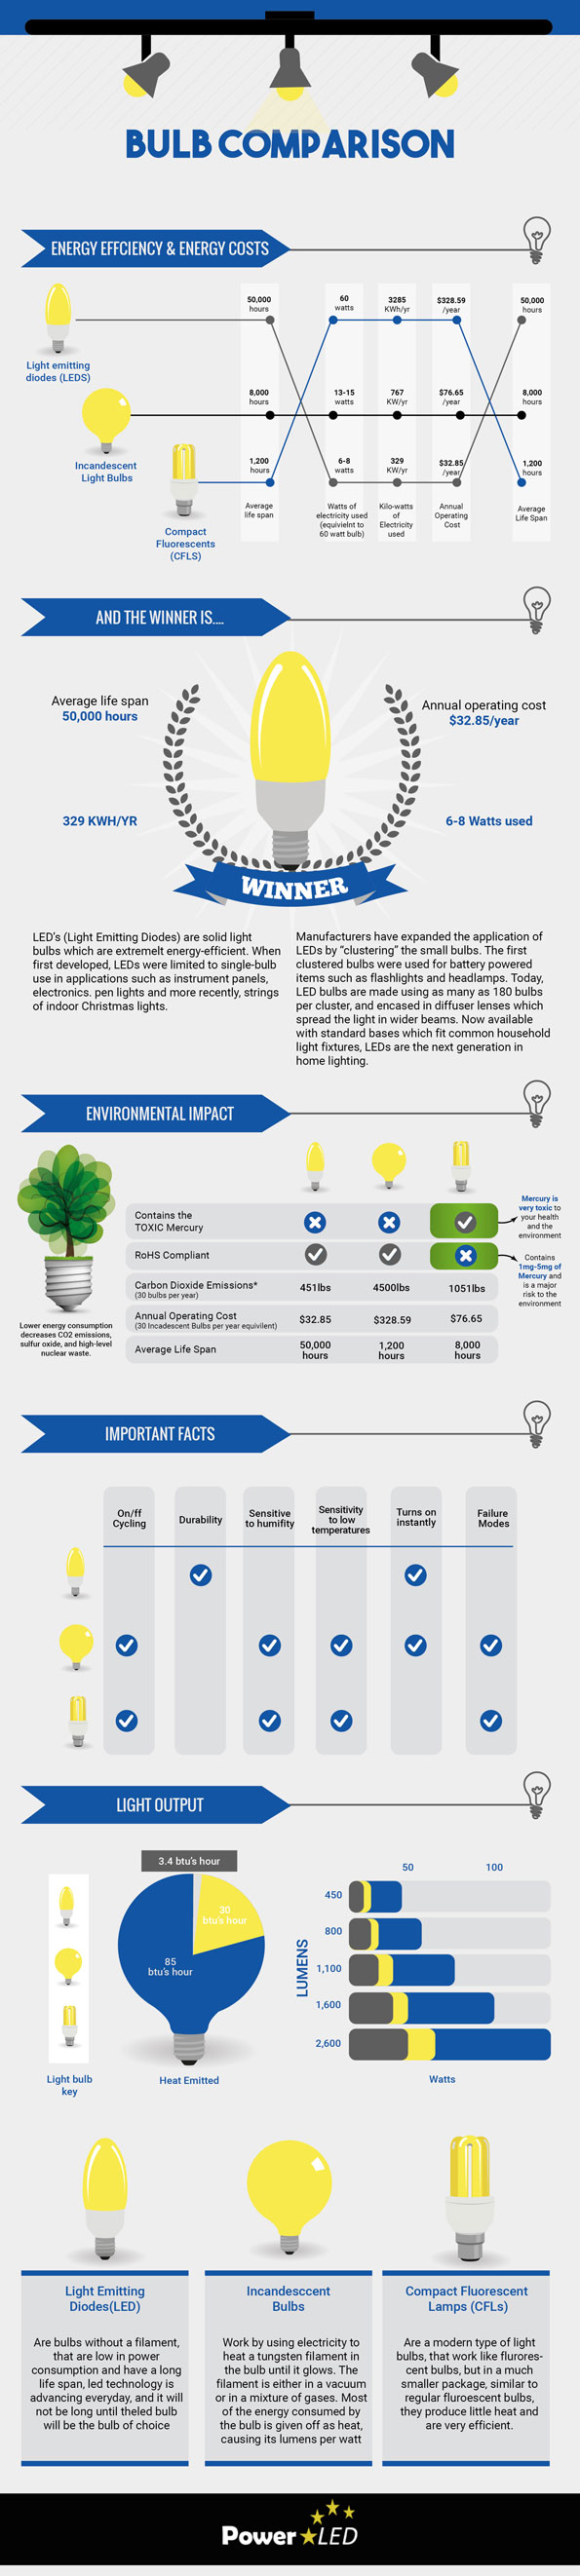 LED Lights Power LED Infographic